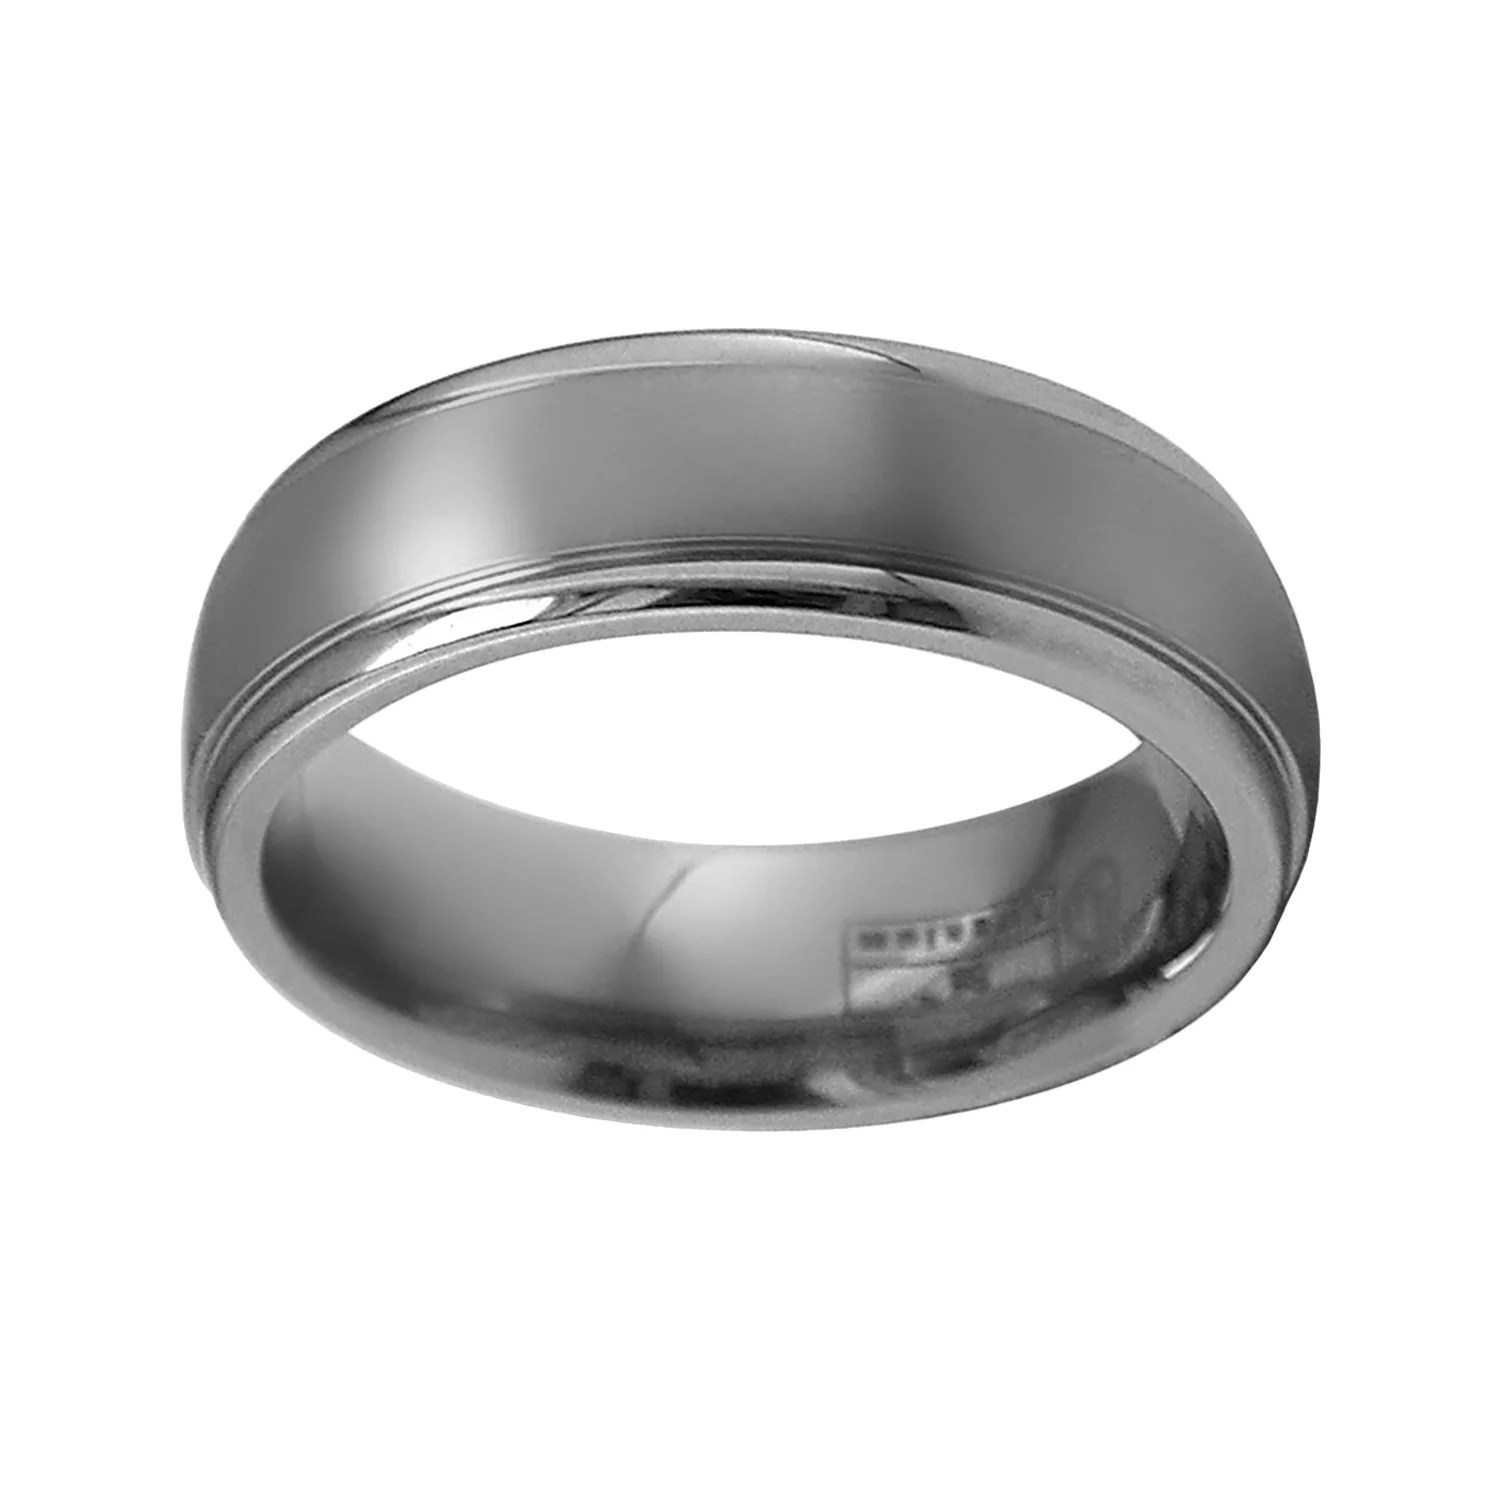 mens titanium wedding bands rings jewelry tungsten hammered wedding band STI by Spectore Gray Titanium Striped Wedding Band Men